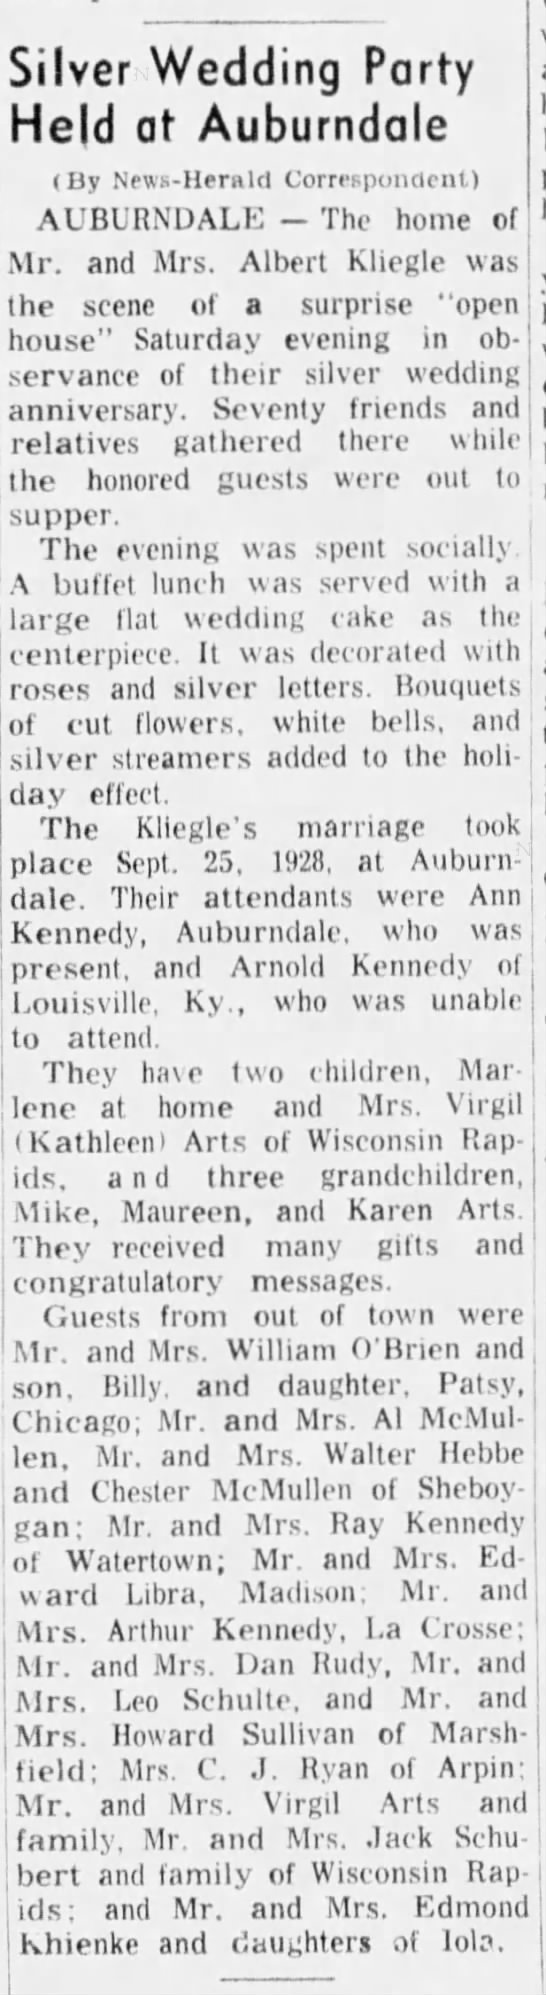 KLIEGLES:  Silver Wedding Party Held at Auburndale -